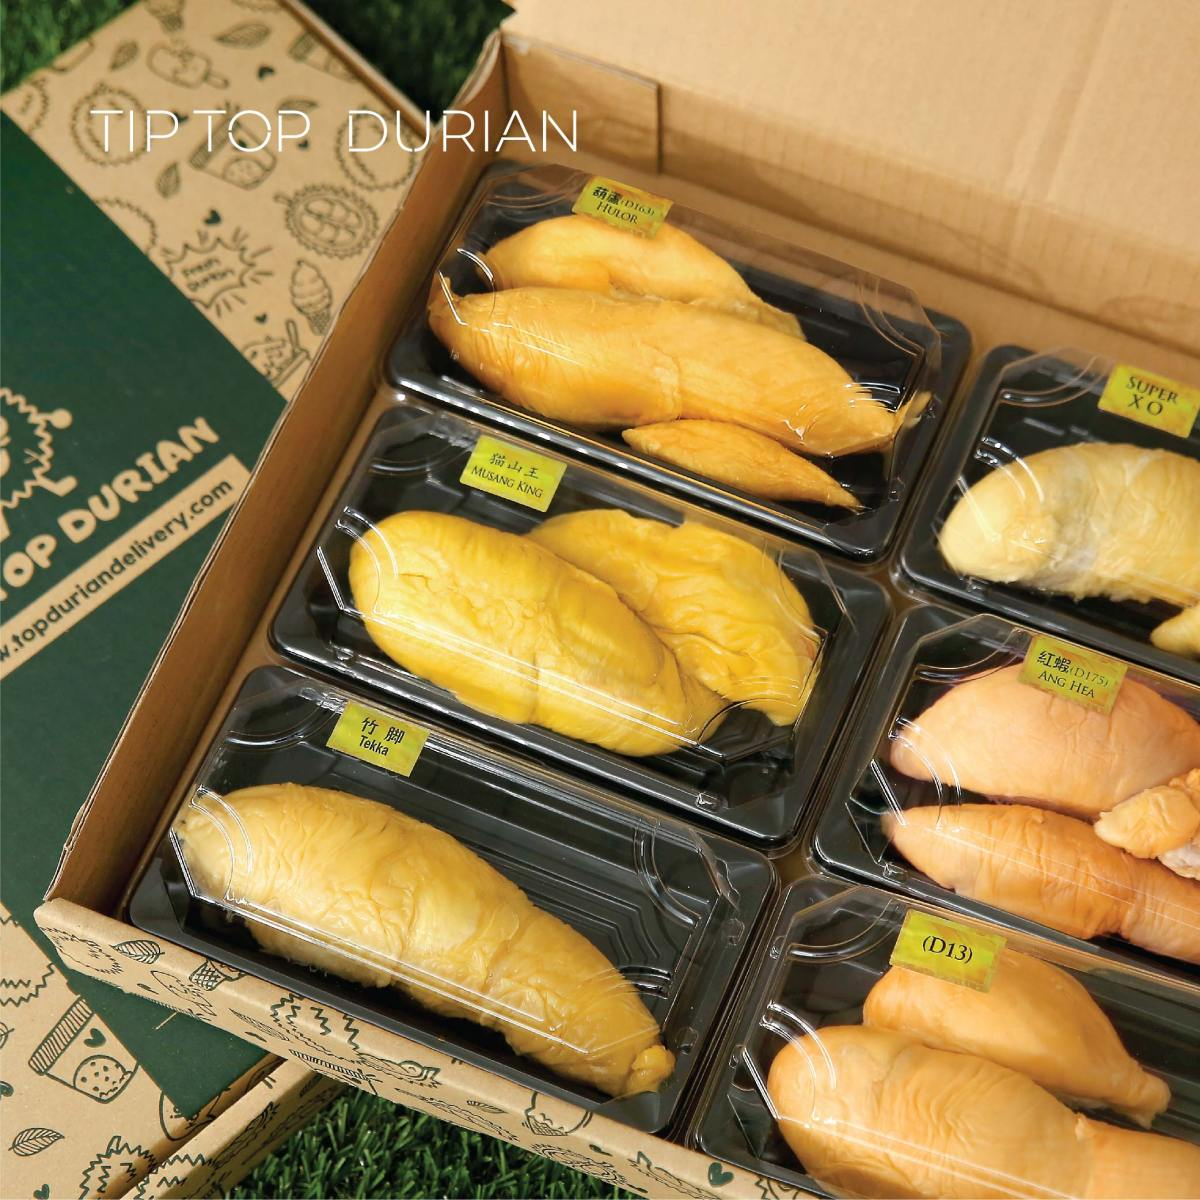 Musang King 6 in 1 Crazy Combo   Tip Top Durian Delivery   Malaysia Top Fresh Durian Online Delivery